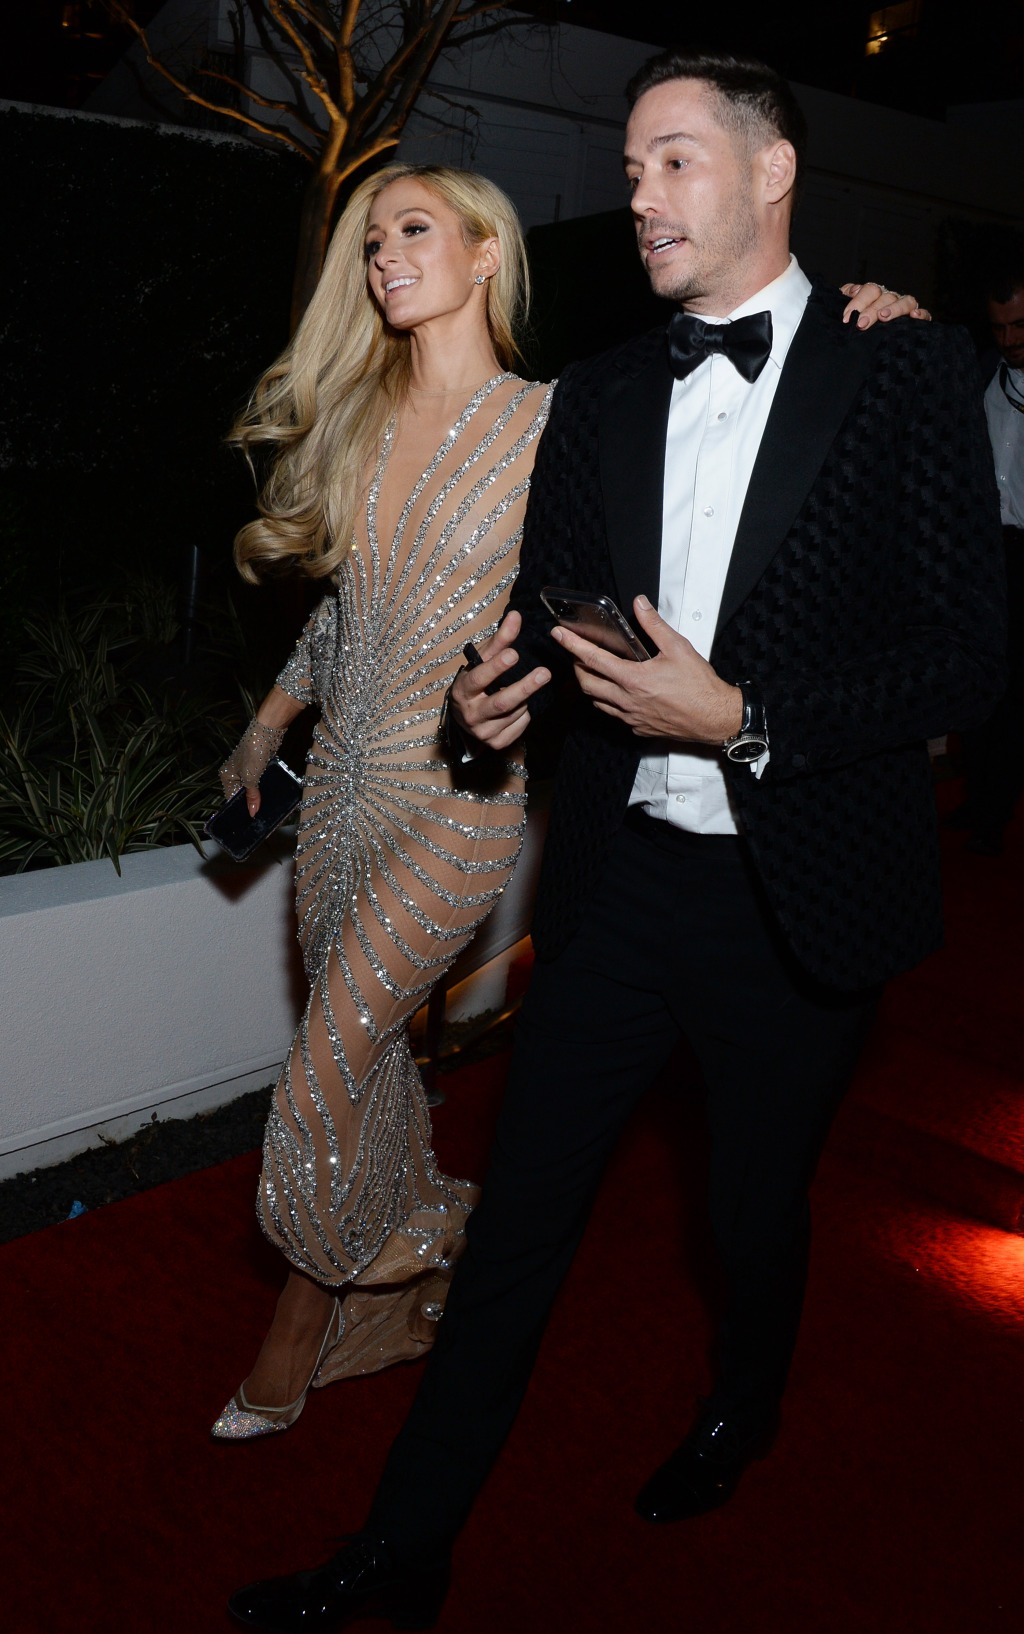 Paris Hilton and Carter Reum